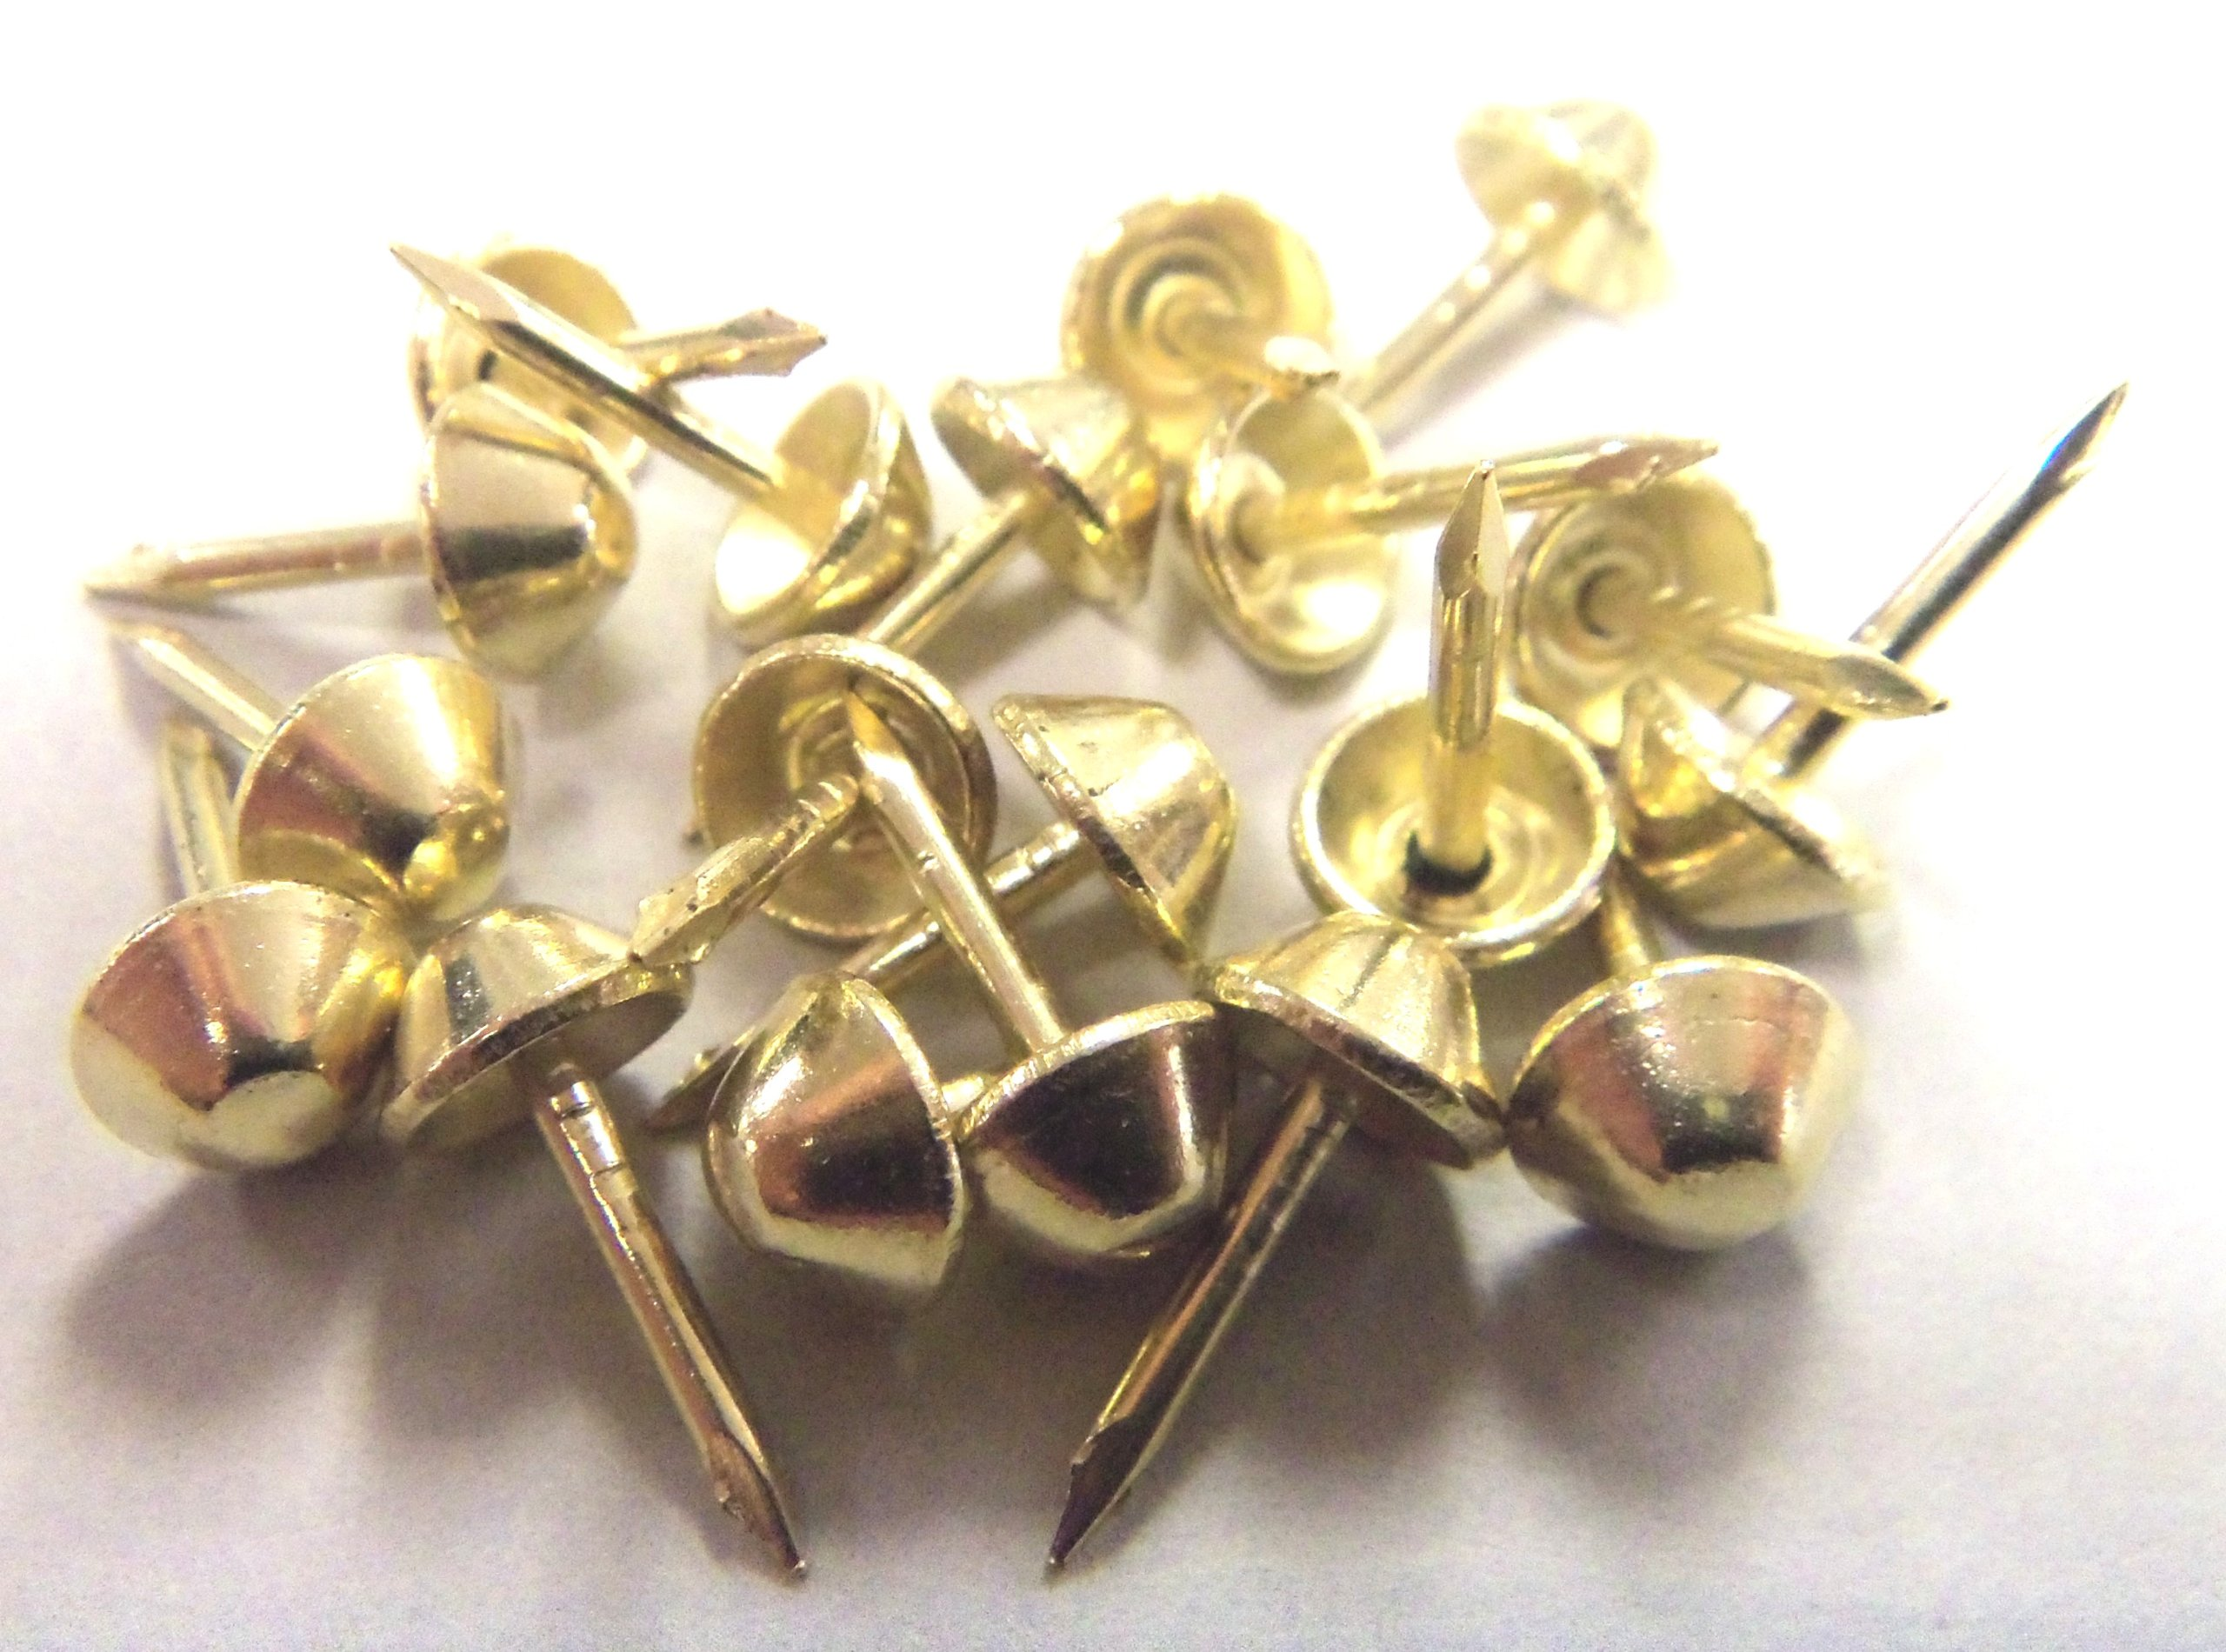 1000 pcs Cone Head Tapered Decorative Tack Nail Upholstery Stud Bright Brass Plated